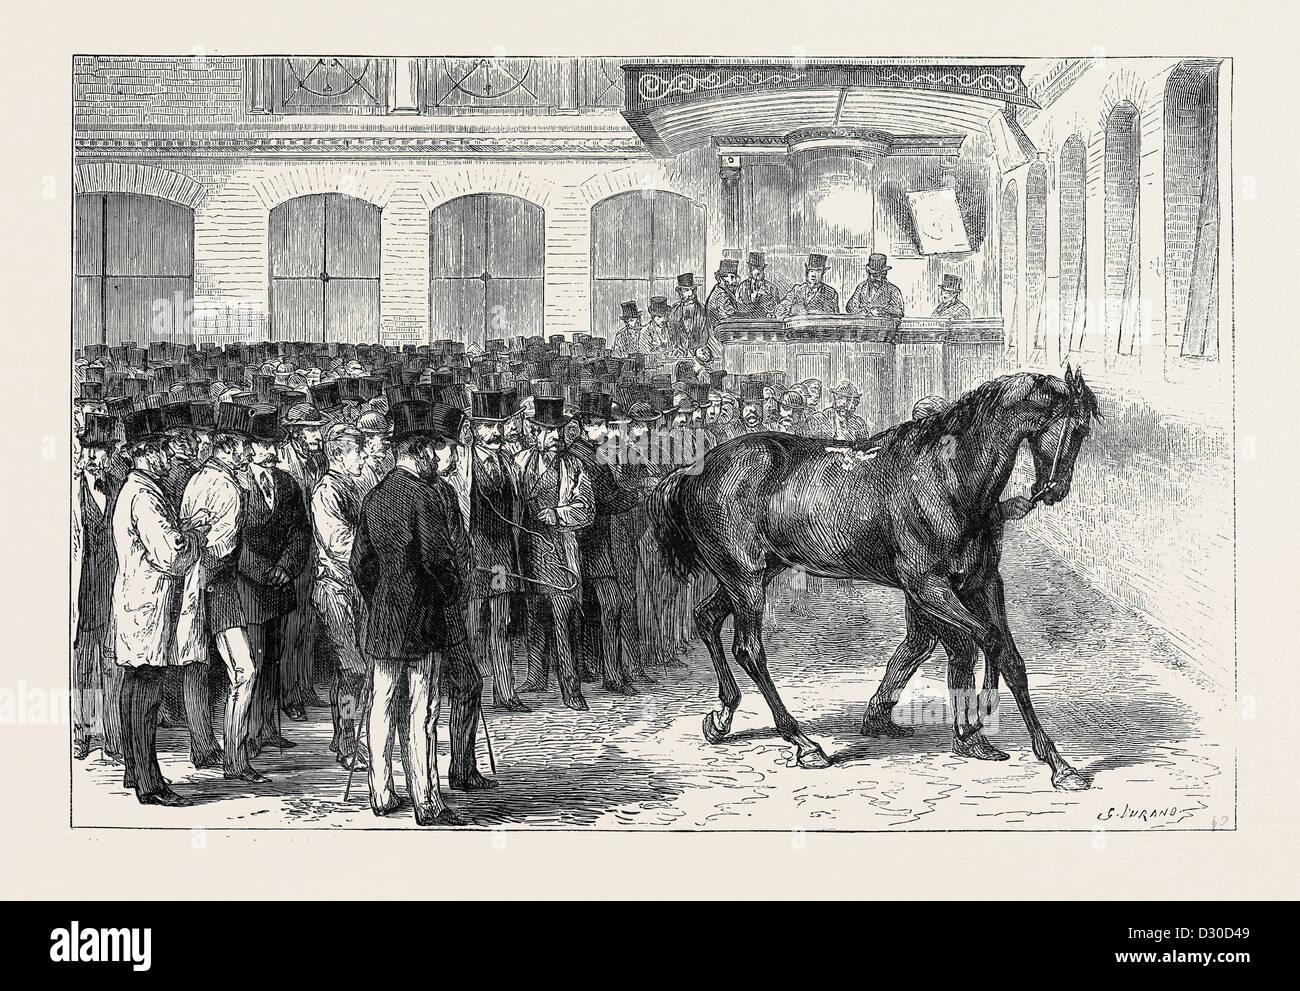 SALE OF THE HORSES OF THE TENTH HUSSARS AT TATTERSALL'S: 'CRUSADER' UNDER THE HAMMER - Stock Image